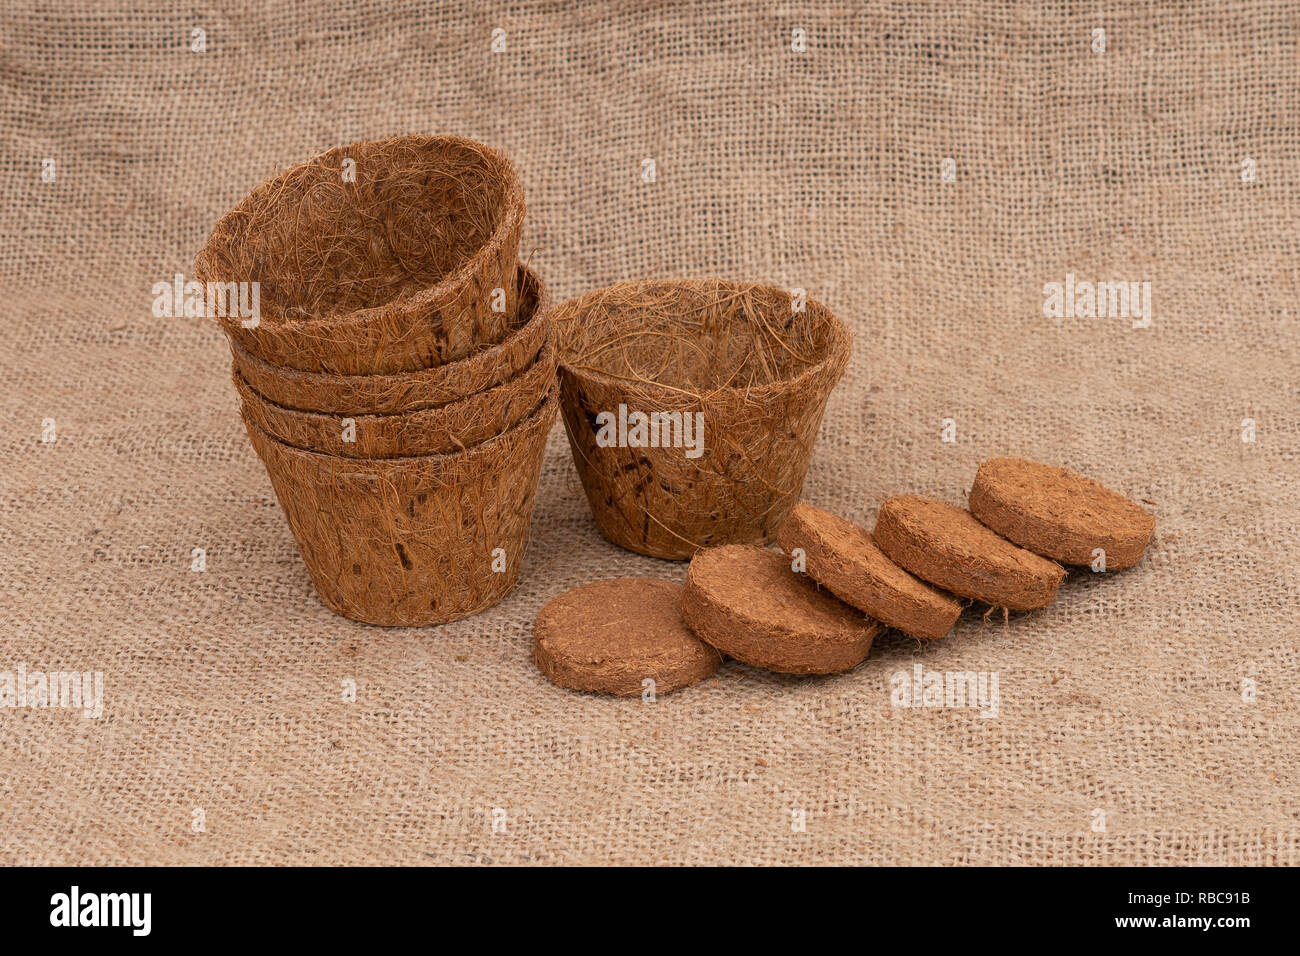 Coir plant pots and compressed compost on hessian. Environmentally friendly spring gardening. - Stock Image